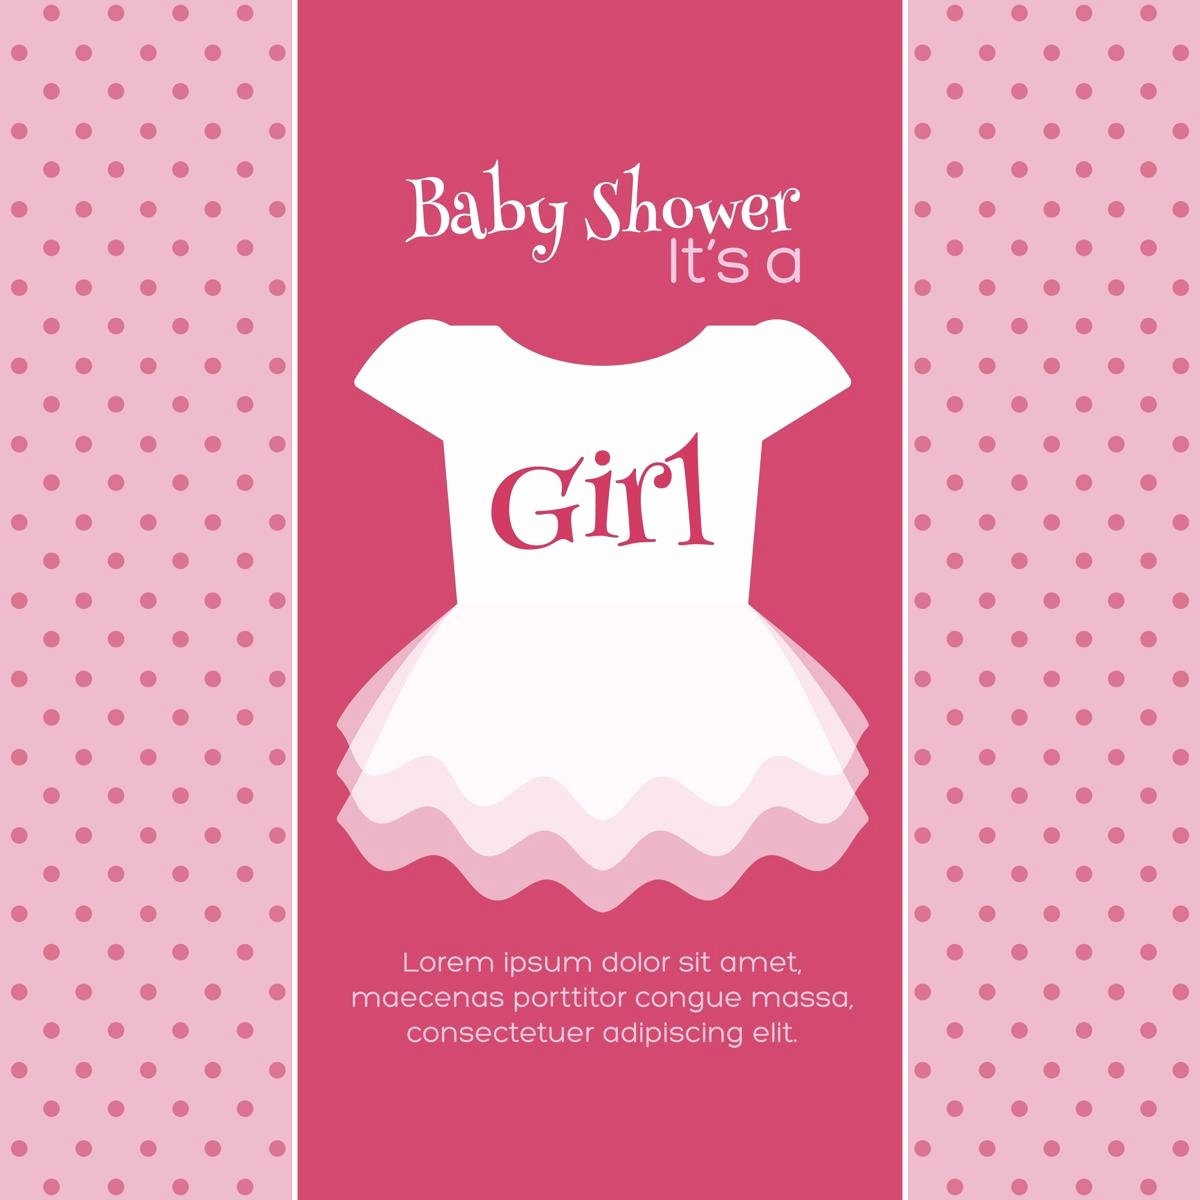 Baby Shower Invite Template New Beautiful and Catchy Free Invitation Templates for Any